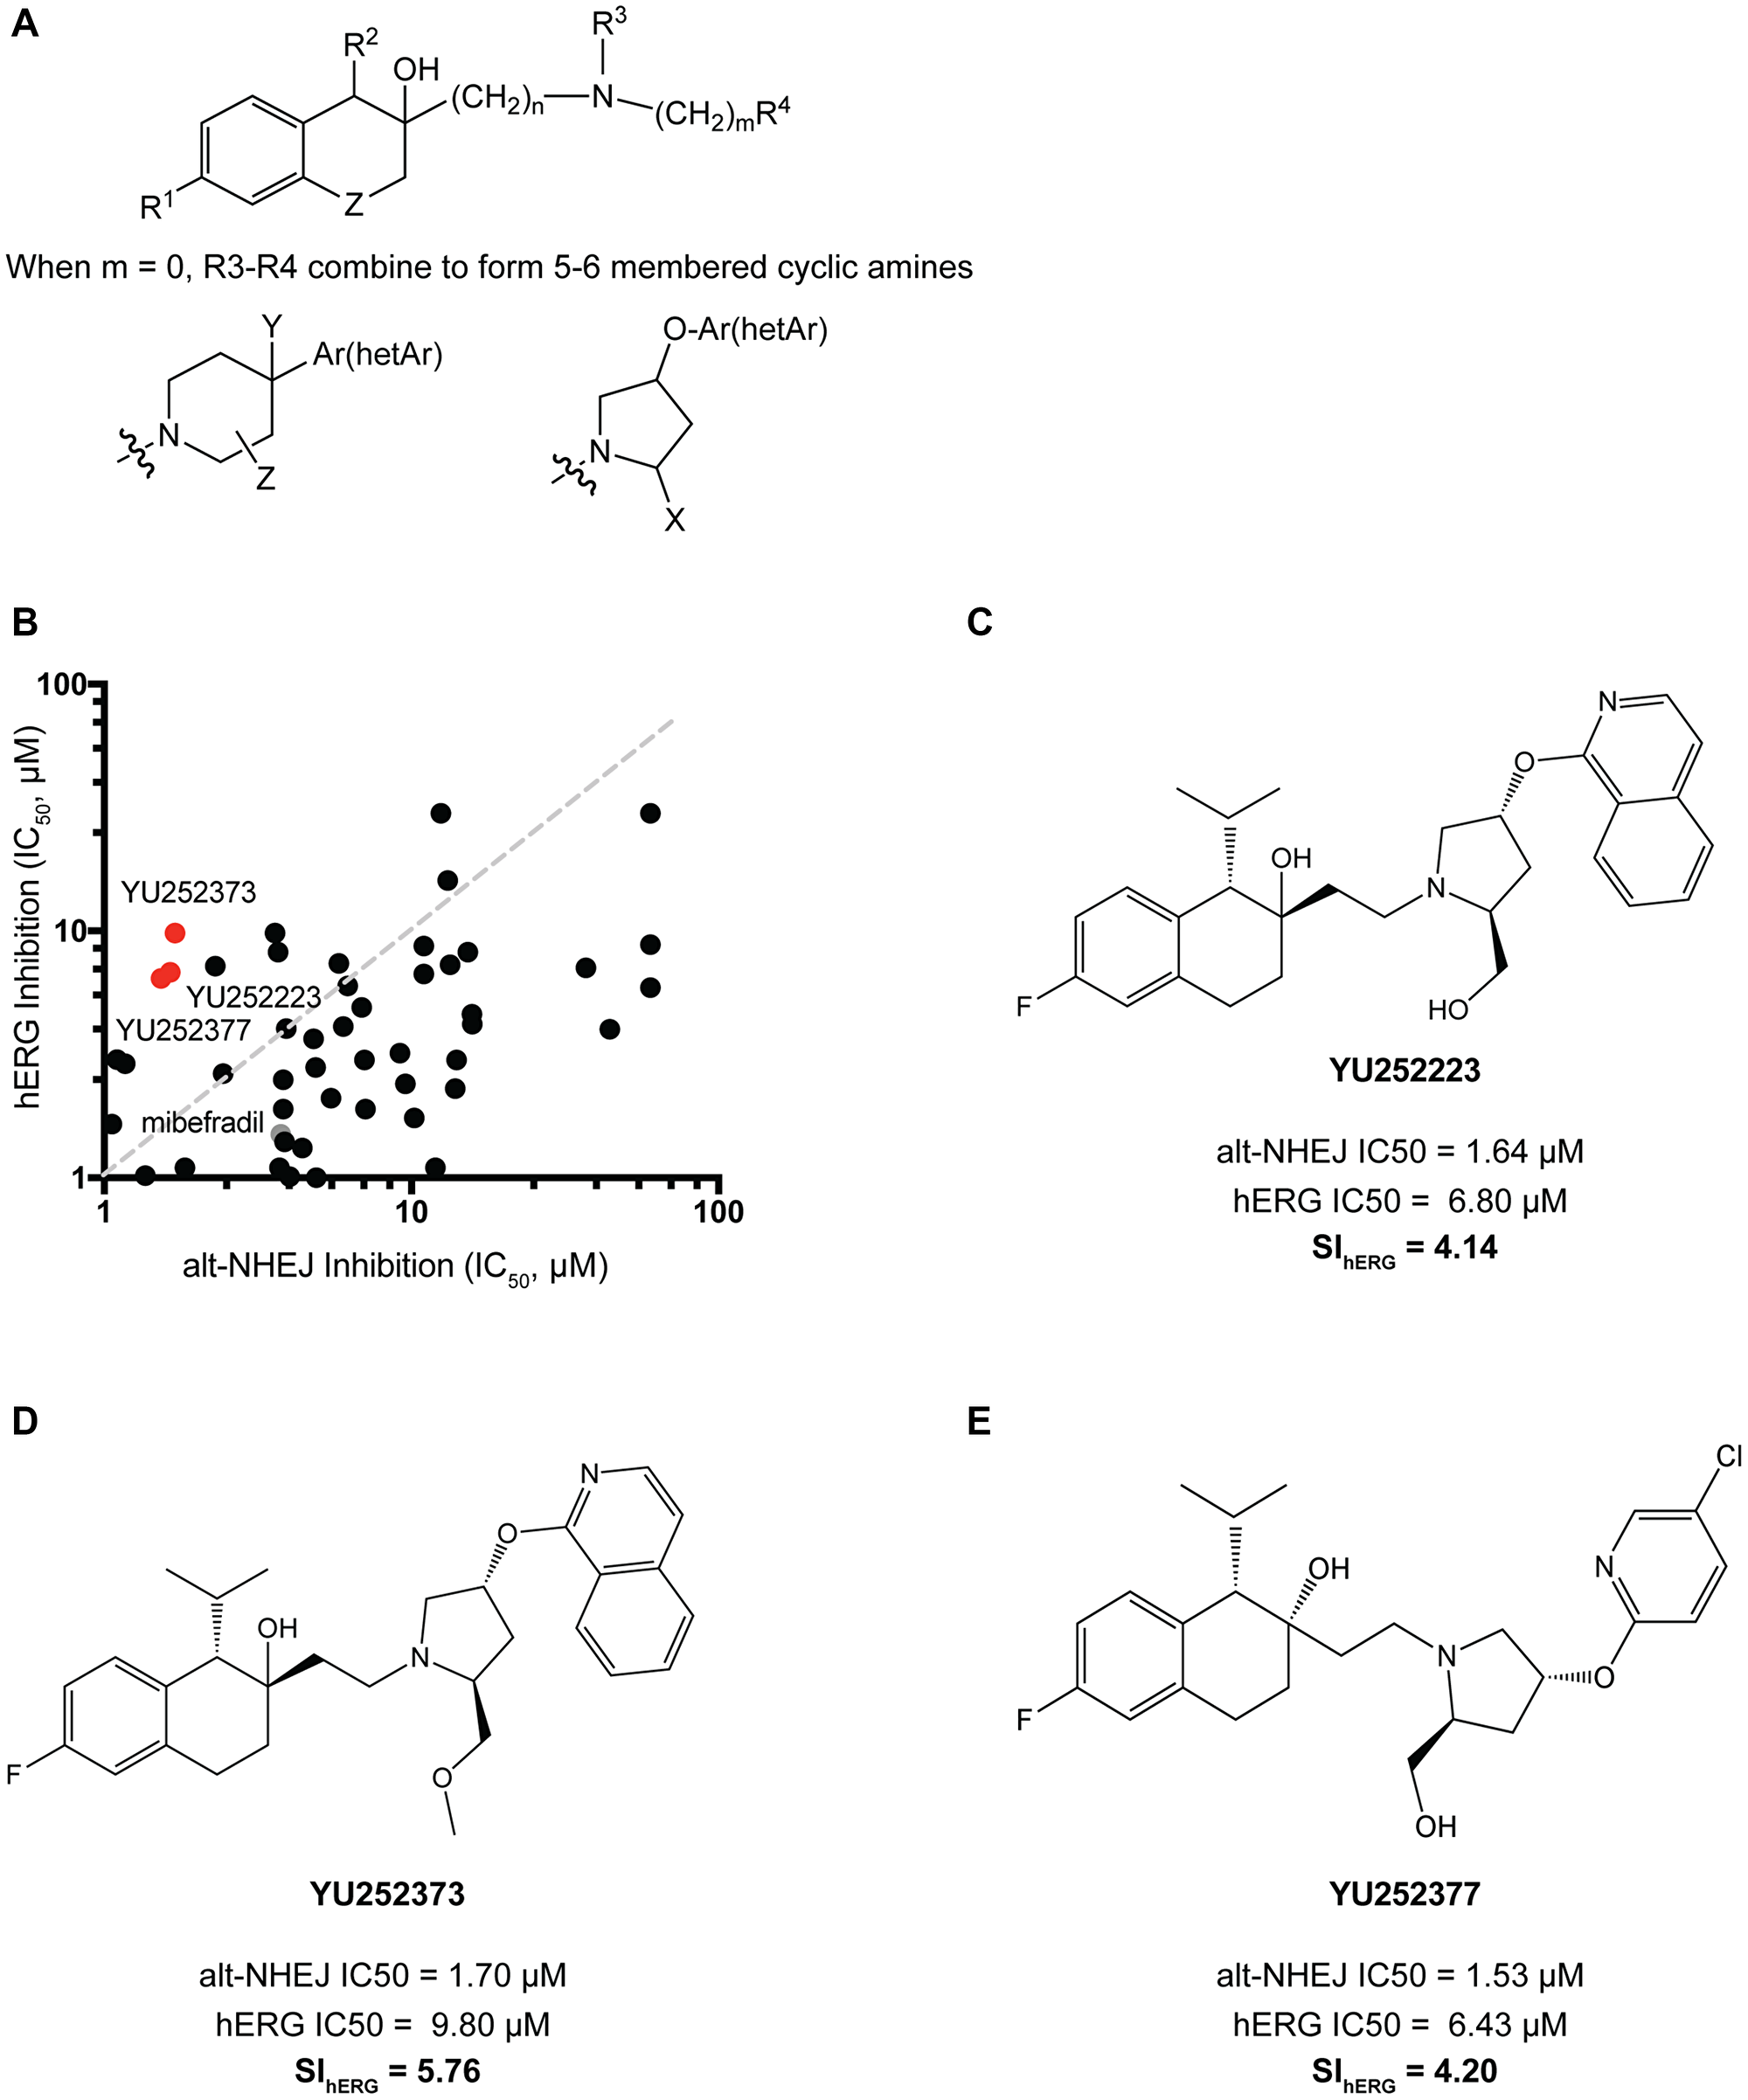 Synthesis and validation of mibefradil analogues with reduced hERG activity.